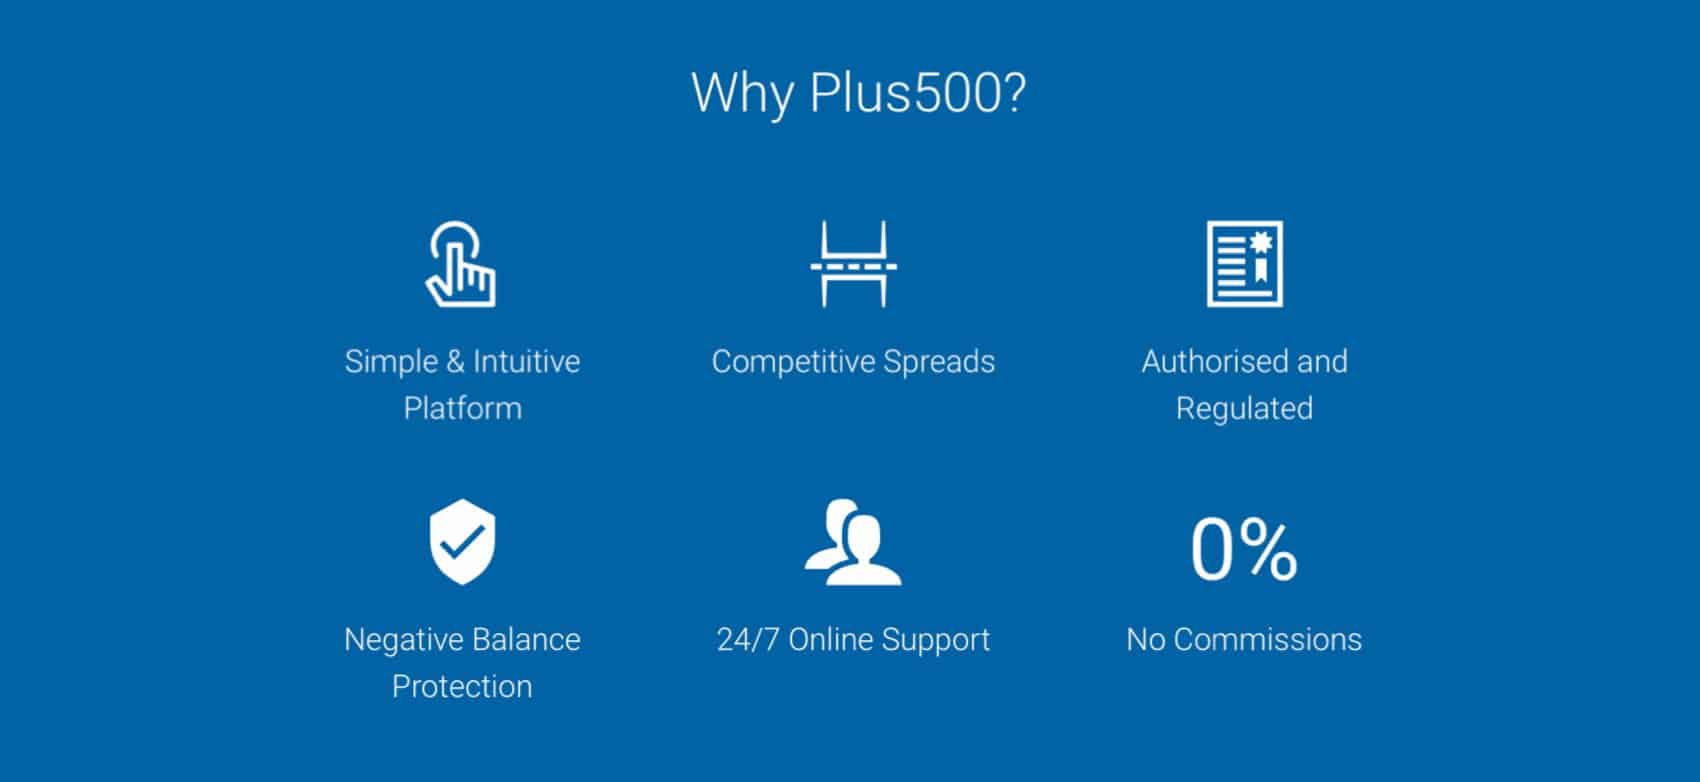 Why choose plus500?